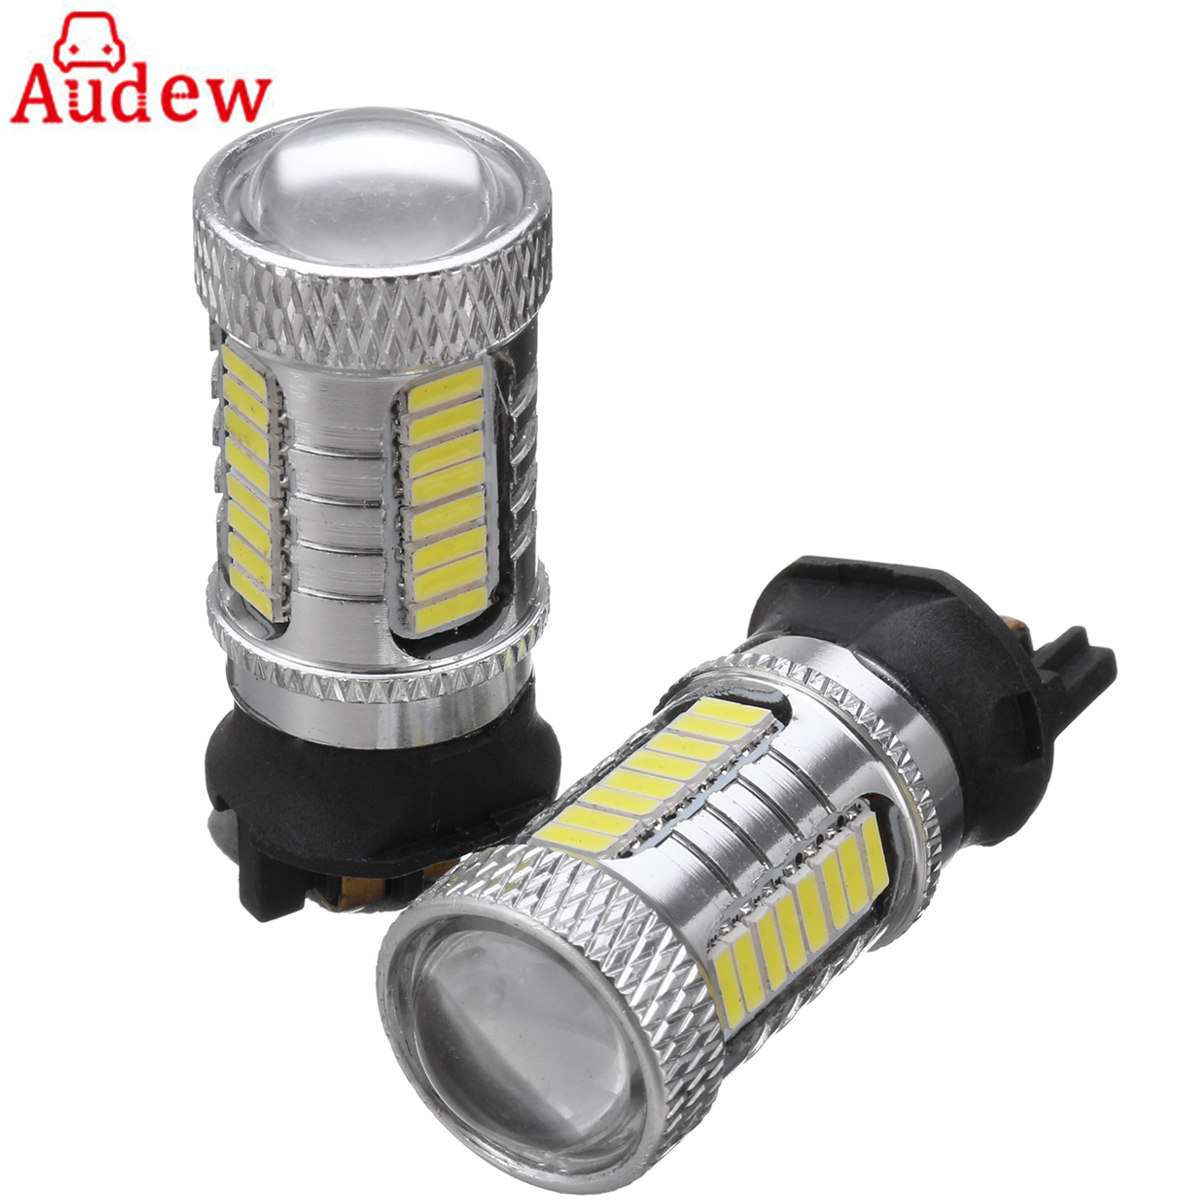 1Pair PWY24W White Car Light Daytime Running Lights LED Lamp Bulbs Fog Light DRL PW24W  For BMW F30 F31 CC fshh qfn32 to dip32 programmer adapter wson32 udfn32 mlf32 ic test socket size 3 2mmx13 2mm pin pitch 1 27mm